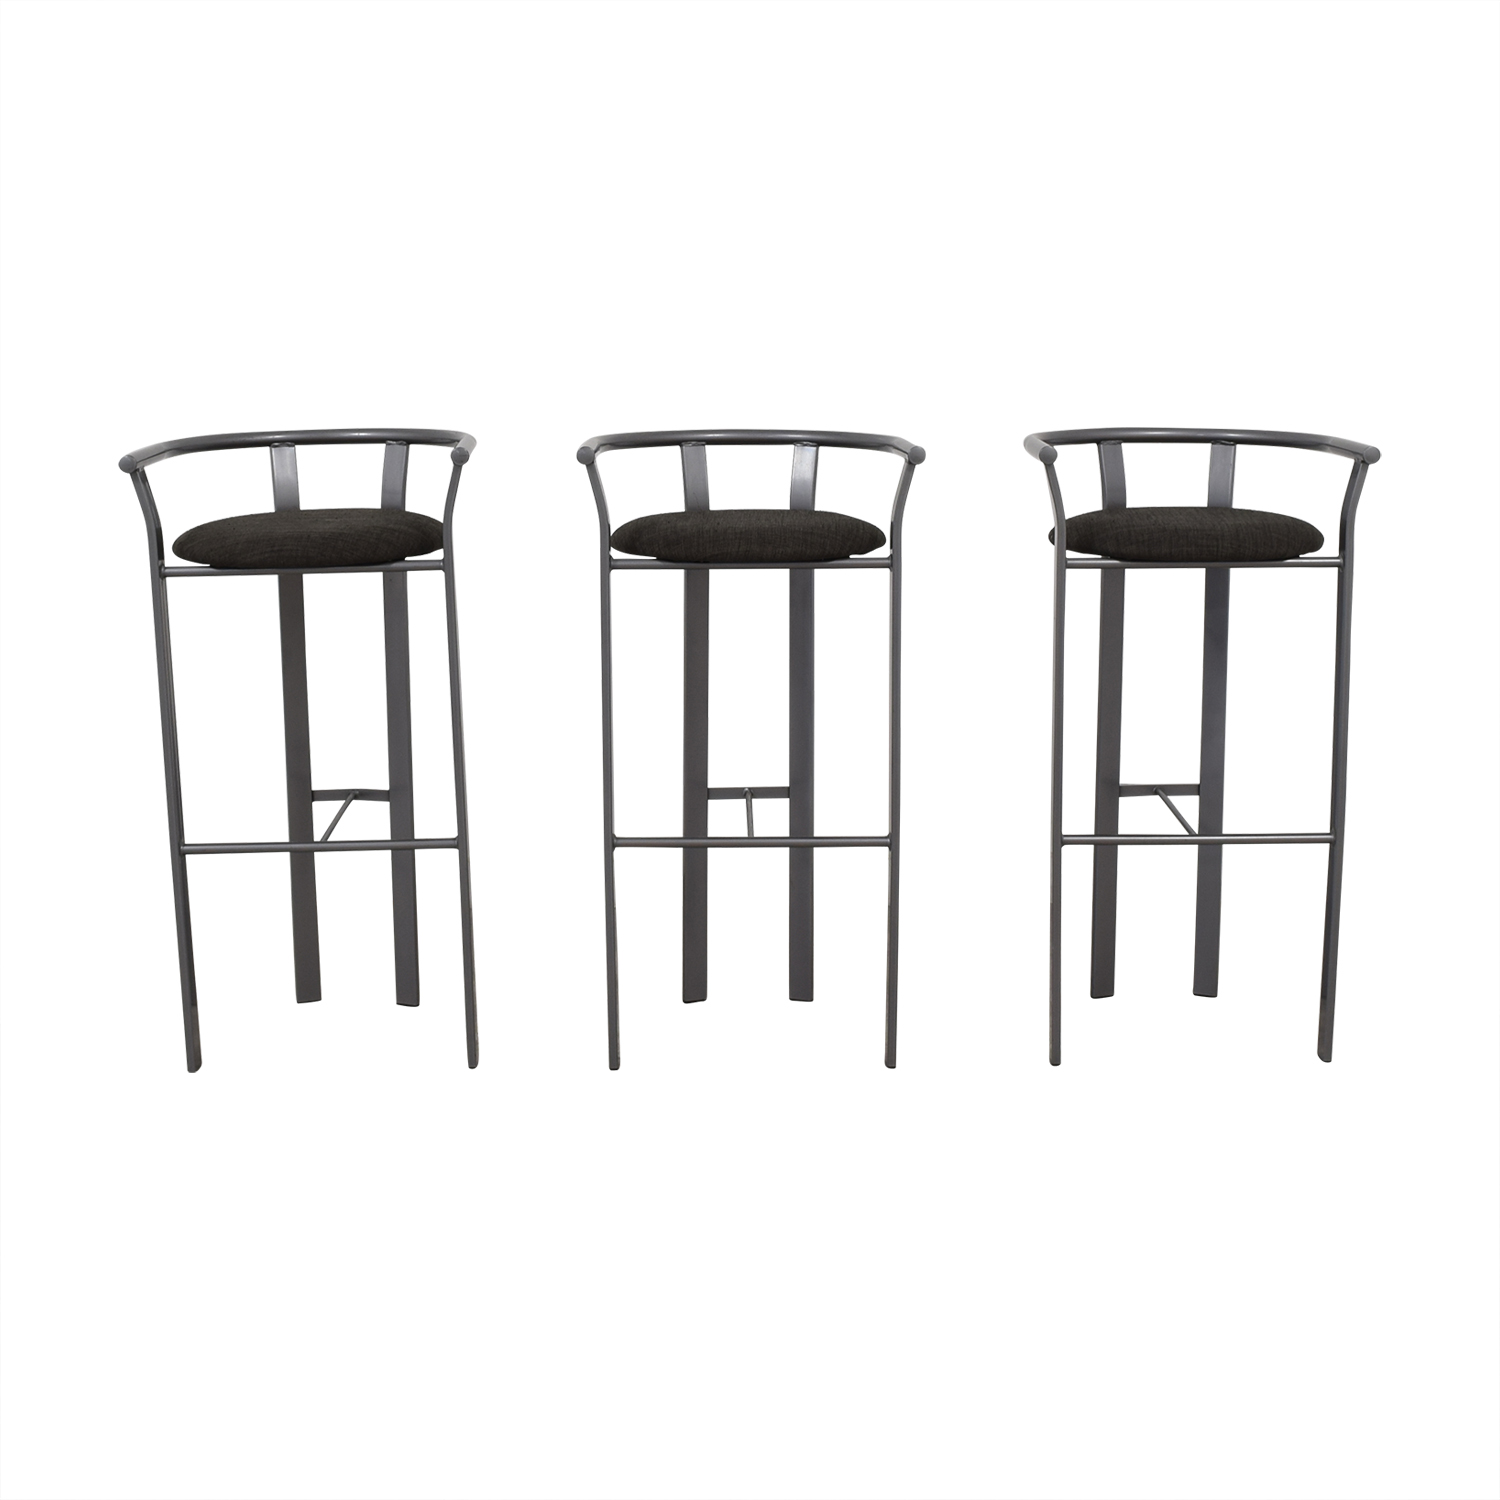 Gray Bar Stools used